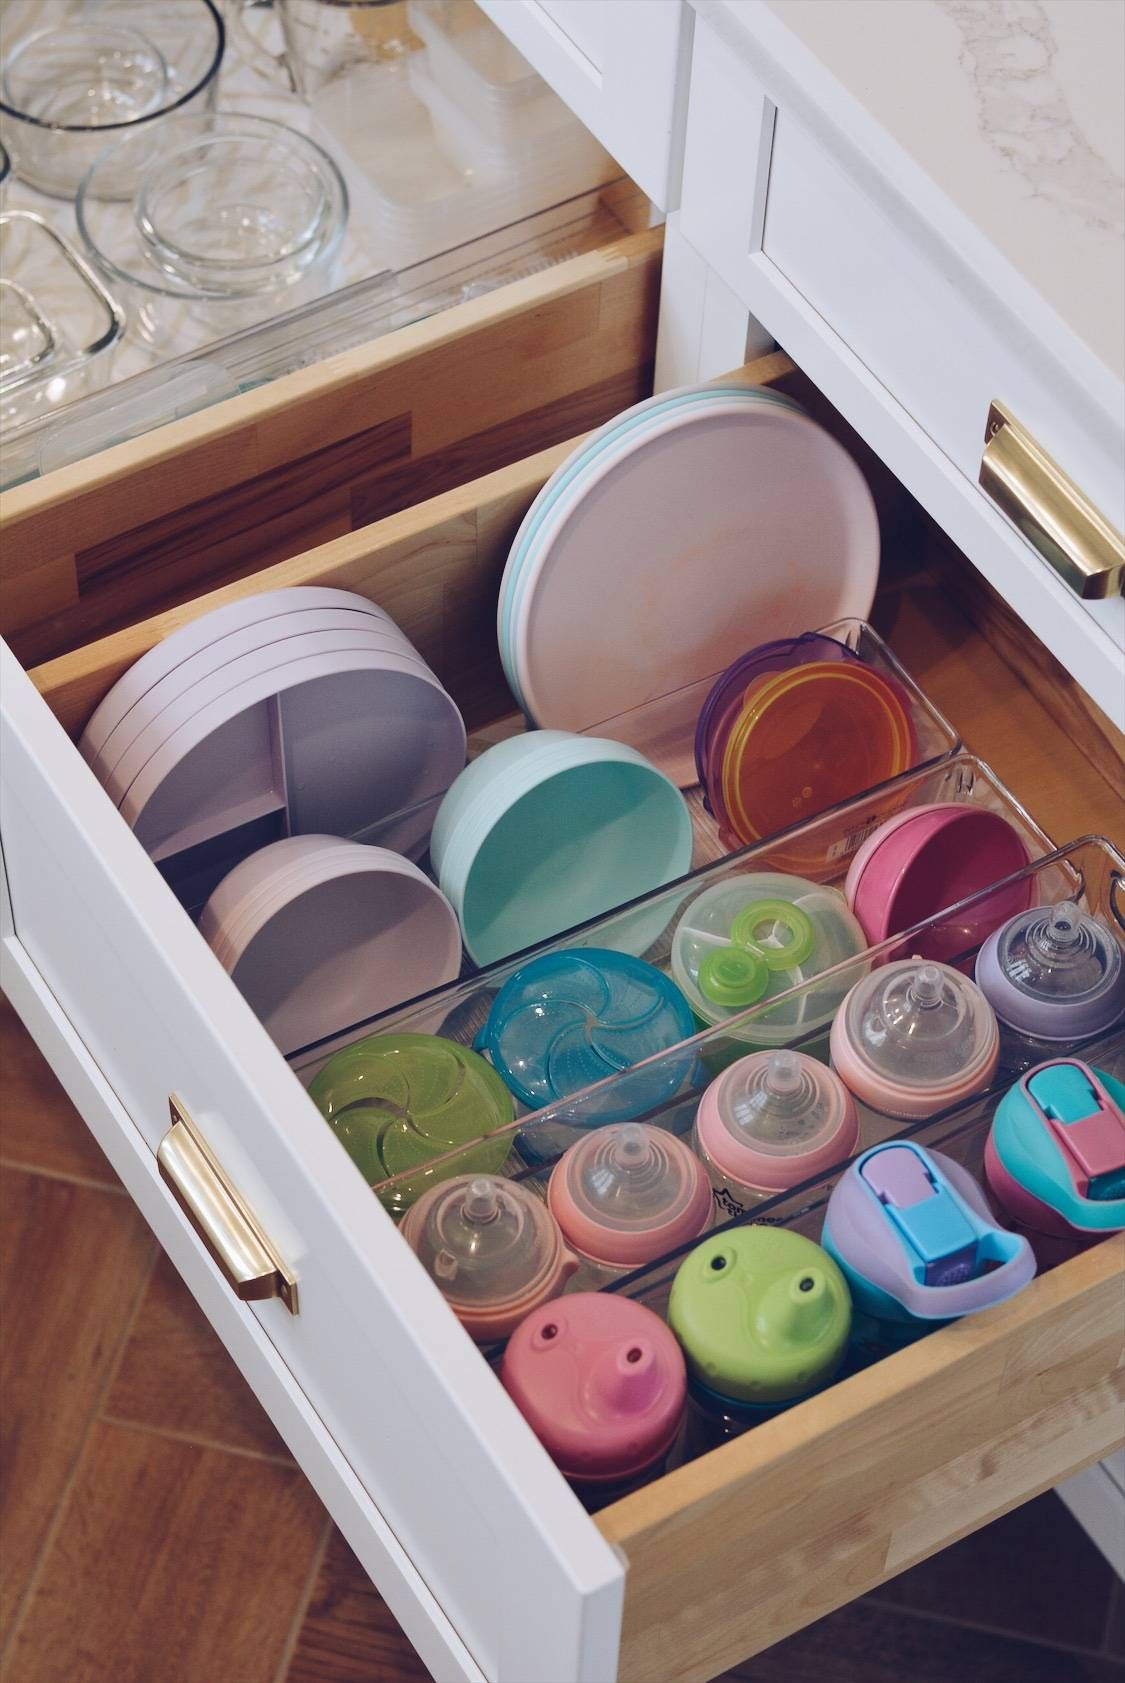 Kitchen Organization How To Organize Your Kitchen Drawers The Pink Dream Kitchen Drawer Organization Kitchen Organization Diy Baby Bottle Organization